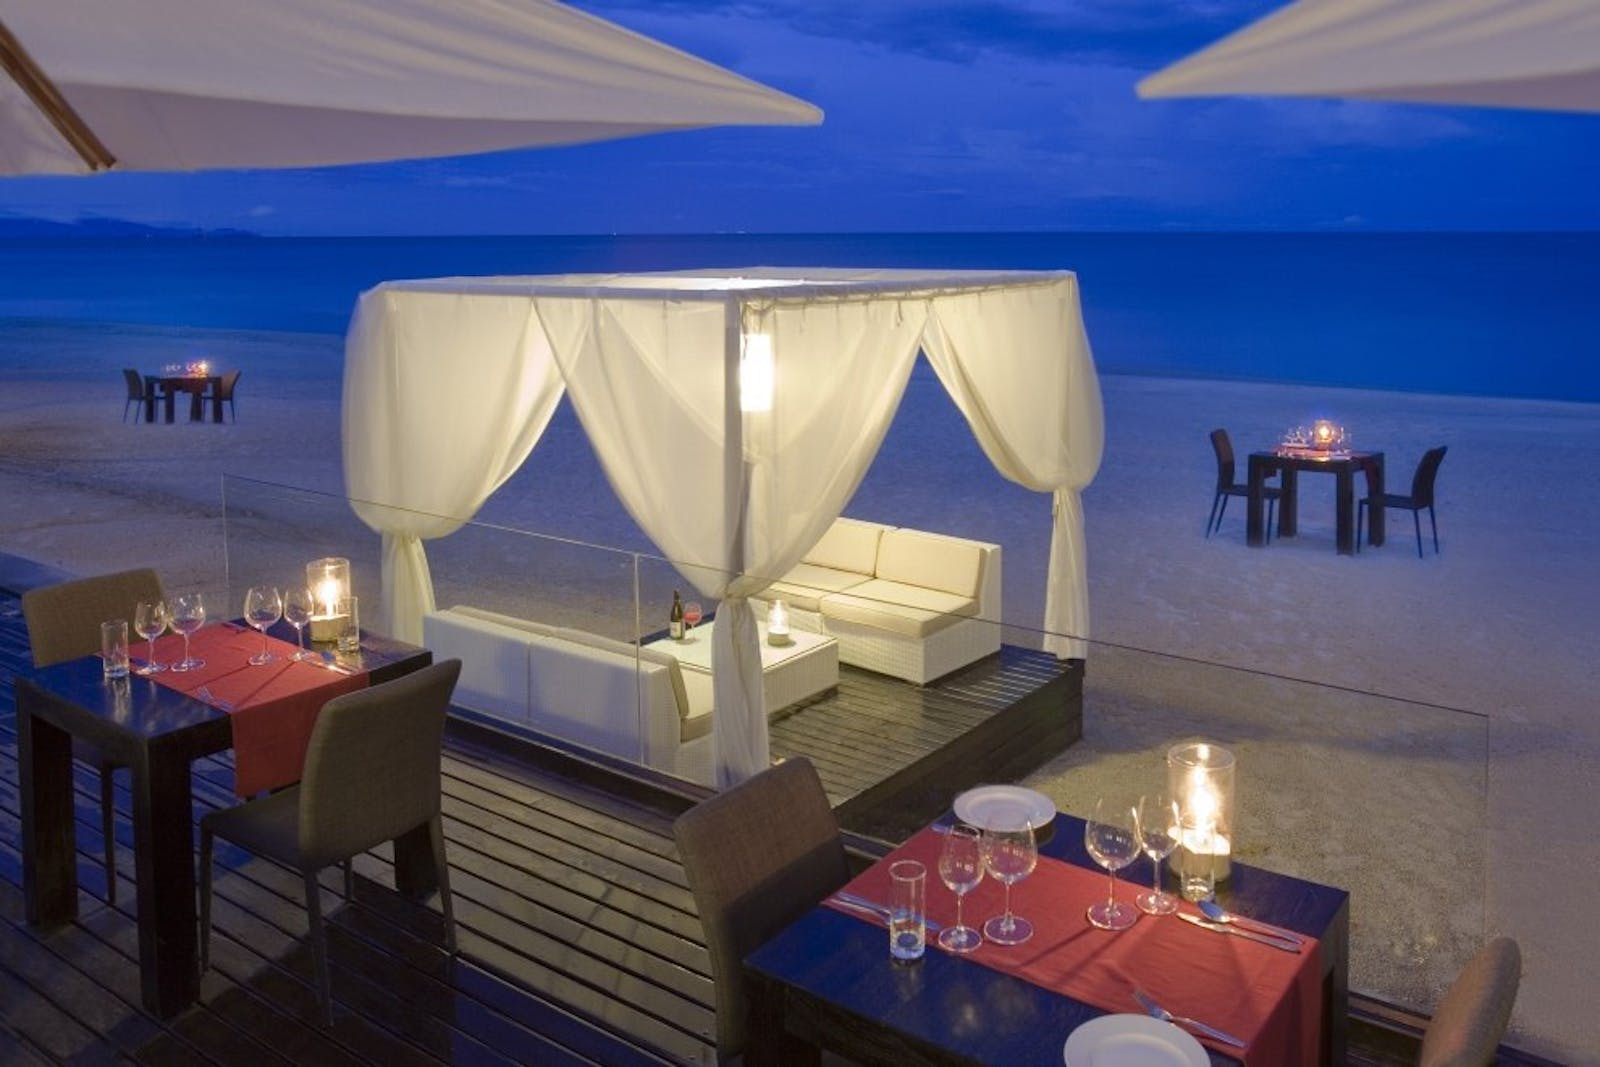 Beach Dinner at Aava Resort & Spa